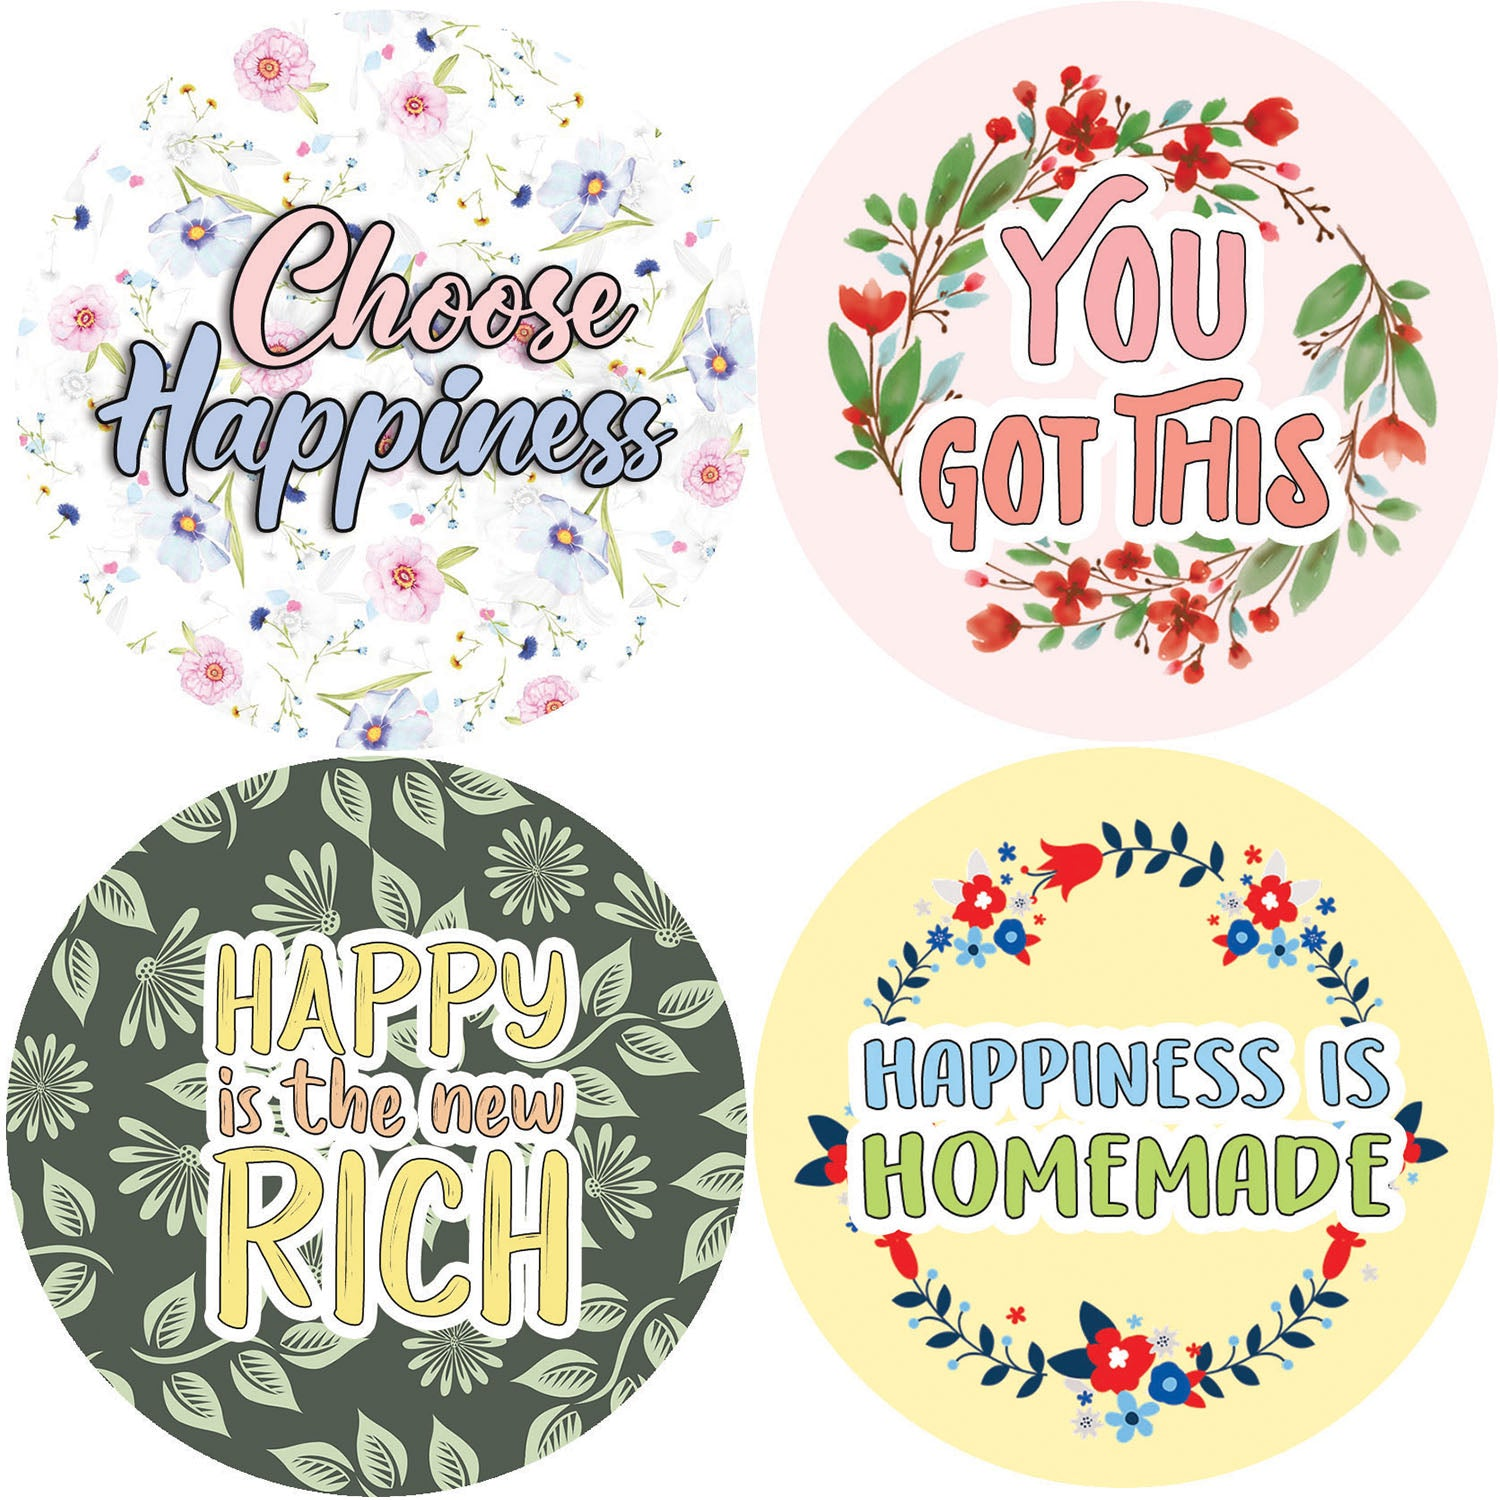 Creanoso Affirmation Stickers - Happiness Kindness Success  - Premium Gift Cards